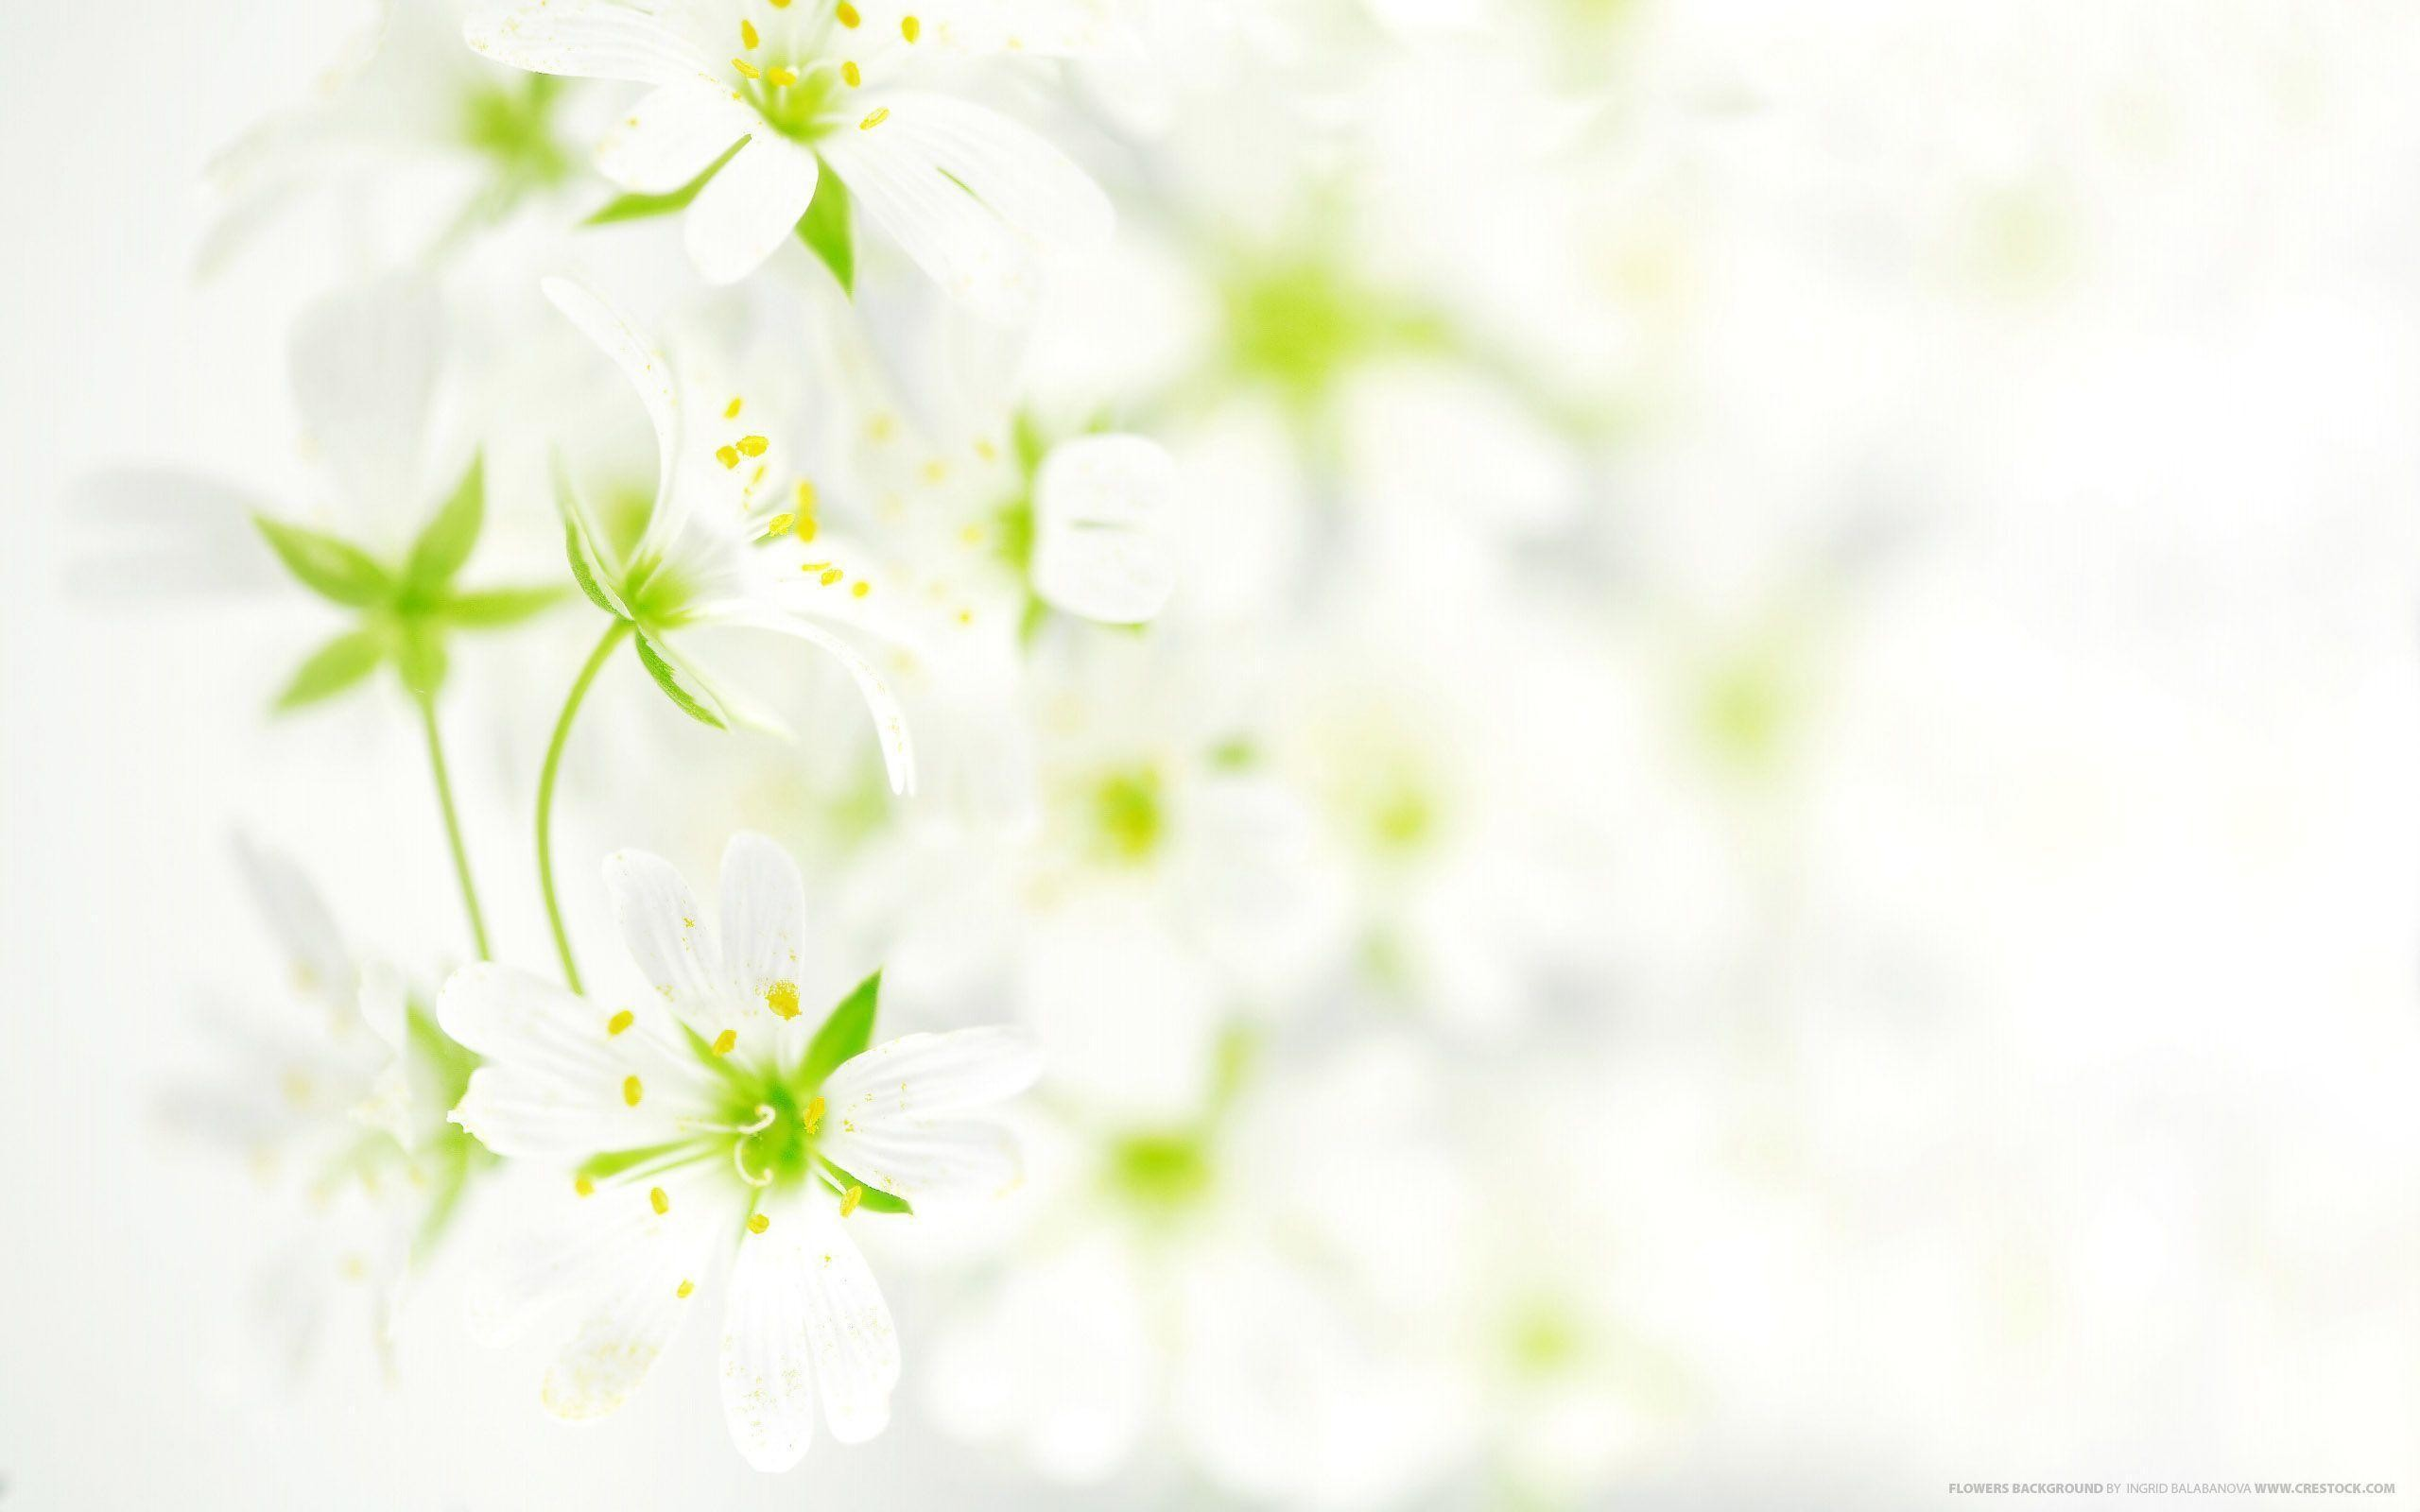 Res: 2560x1600, Flower Images With White Background Wallpaper | ForestHDWallpaper.